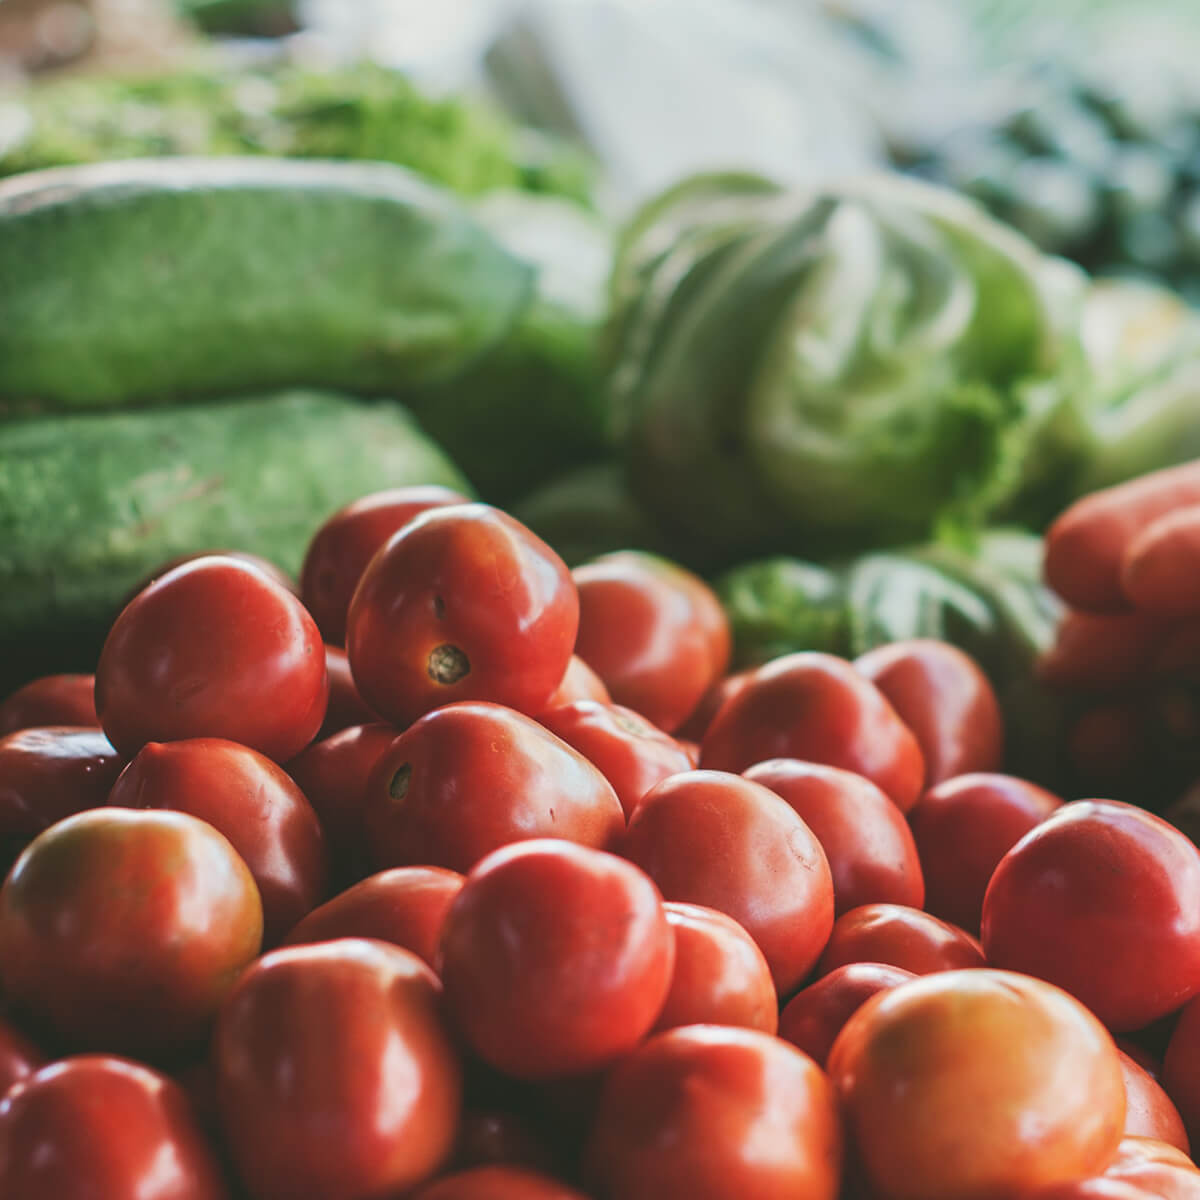 Photo of fresh produce with tomatoes, and lettuce, and carrots